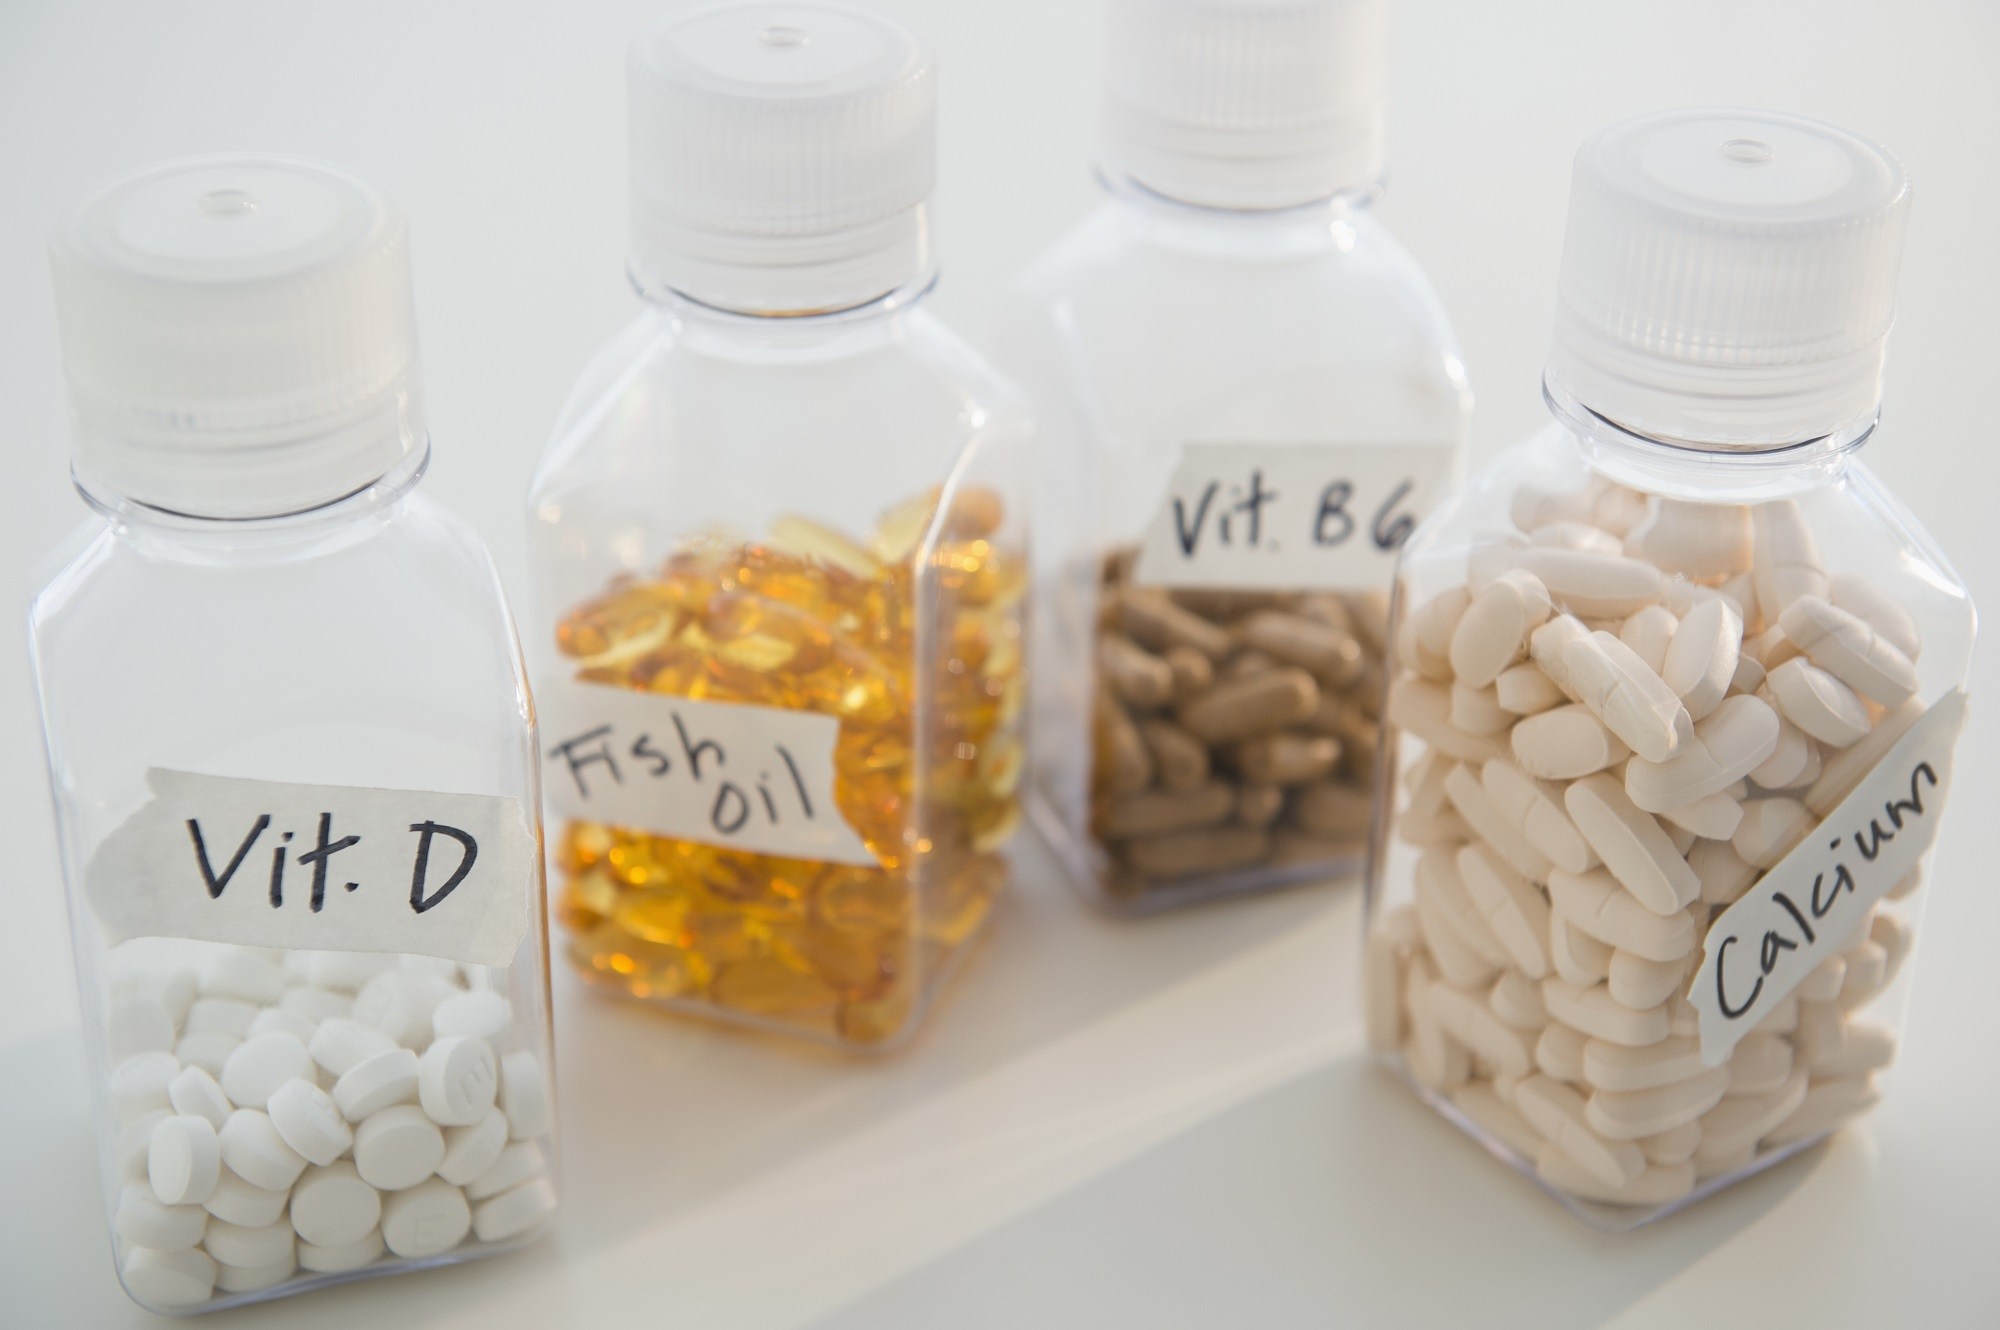 U.S. China Trade War Has Dietary Supplement Industry on High Alert